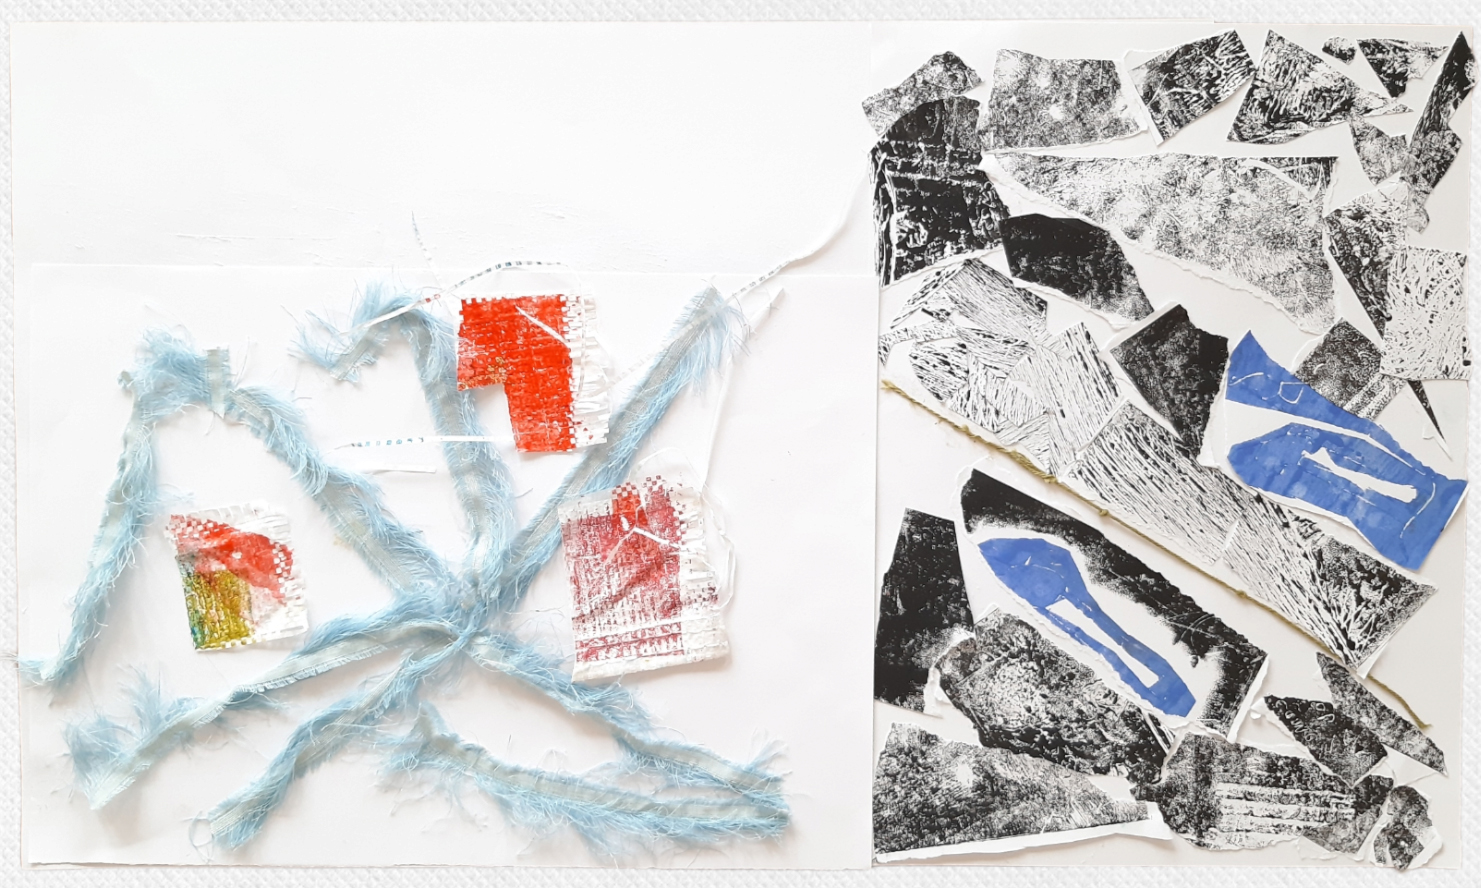 #12_#1_3rd_and_4th_class_MIXED_MEDIA_COLLAGE_ON_PAPER_42x72cm